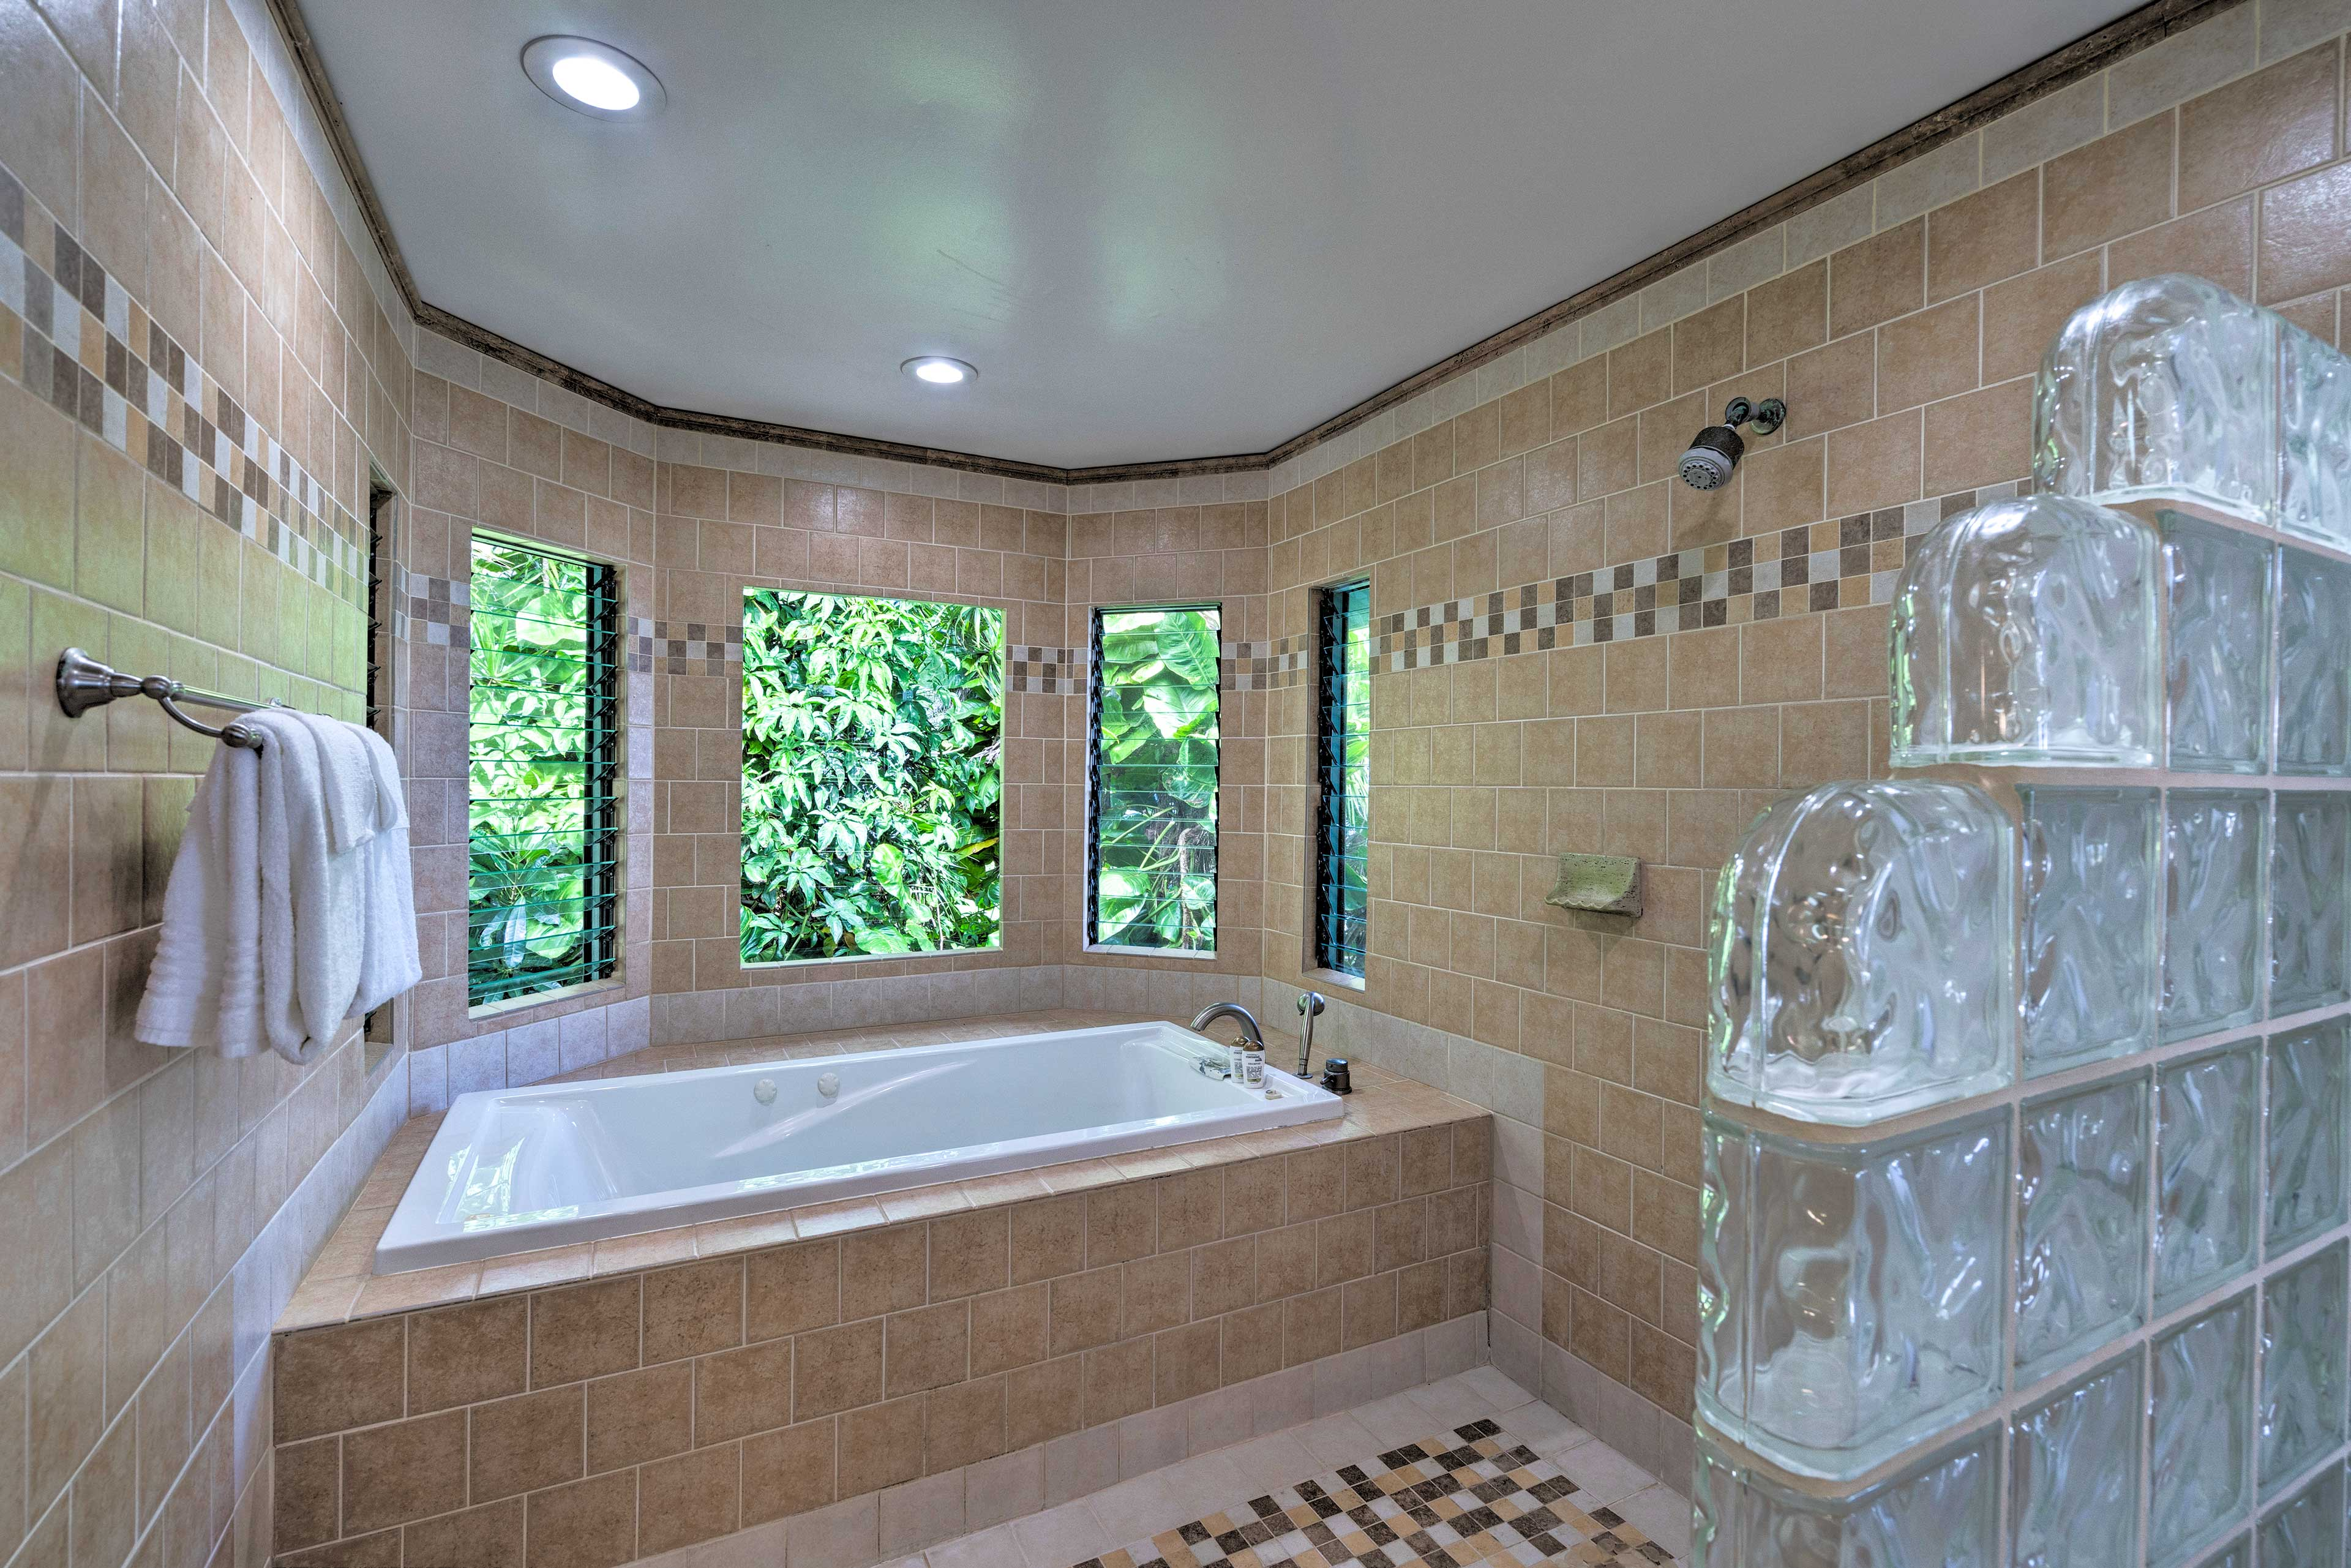 Soak in the large tub or take a quick rinse in the shower.